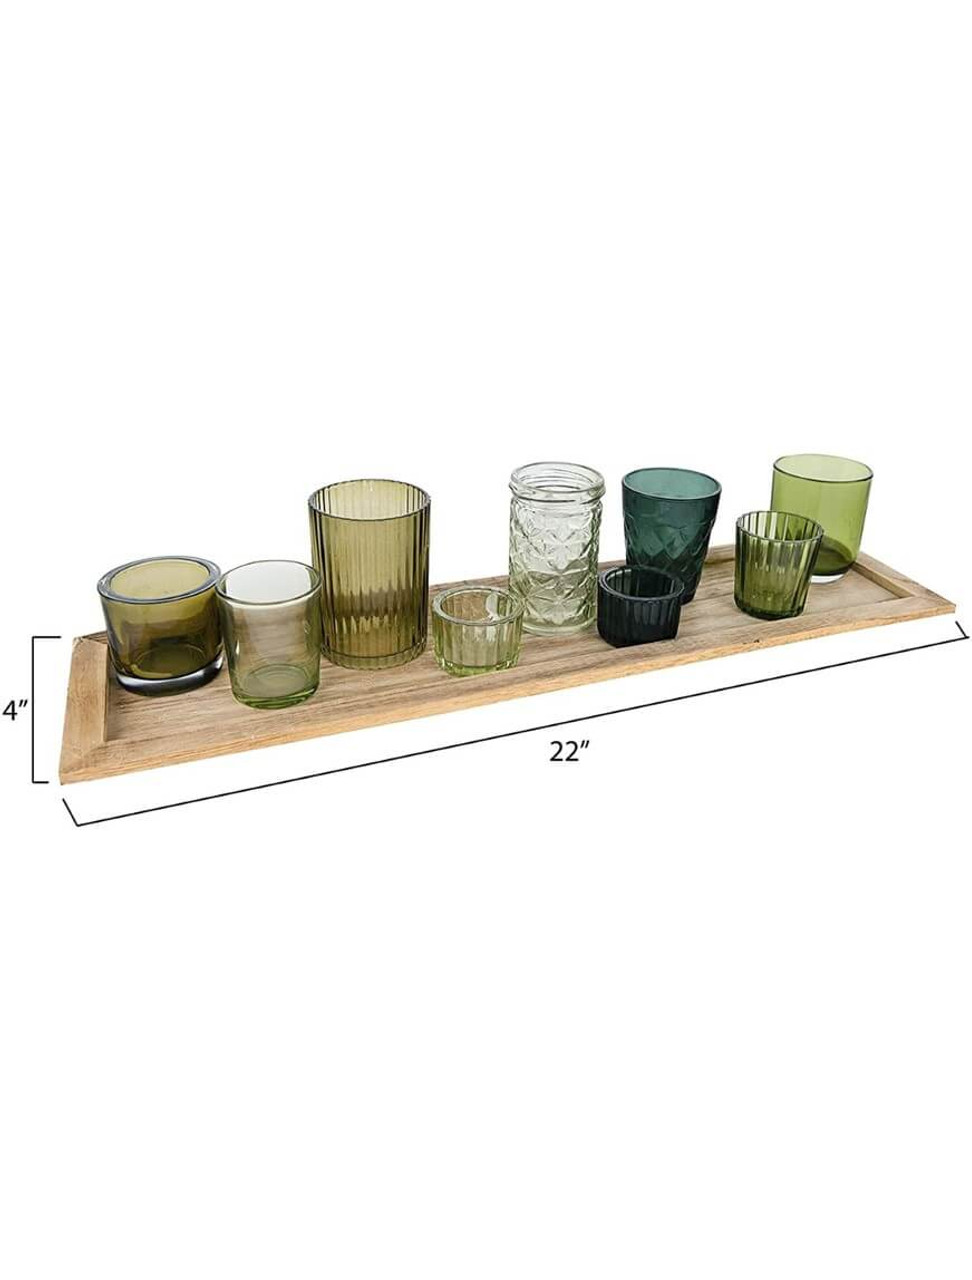 """Wood tray w/ 9 glass votive holders in earthy green shades. Tray: 22"""" L x 5.5"""" W x 0. 5"""" H; votive holders rang from 2"""" W x 1"""" H to 2. 5"""" W x 4"""" H."""